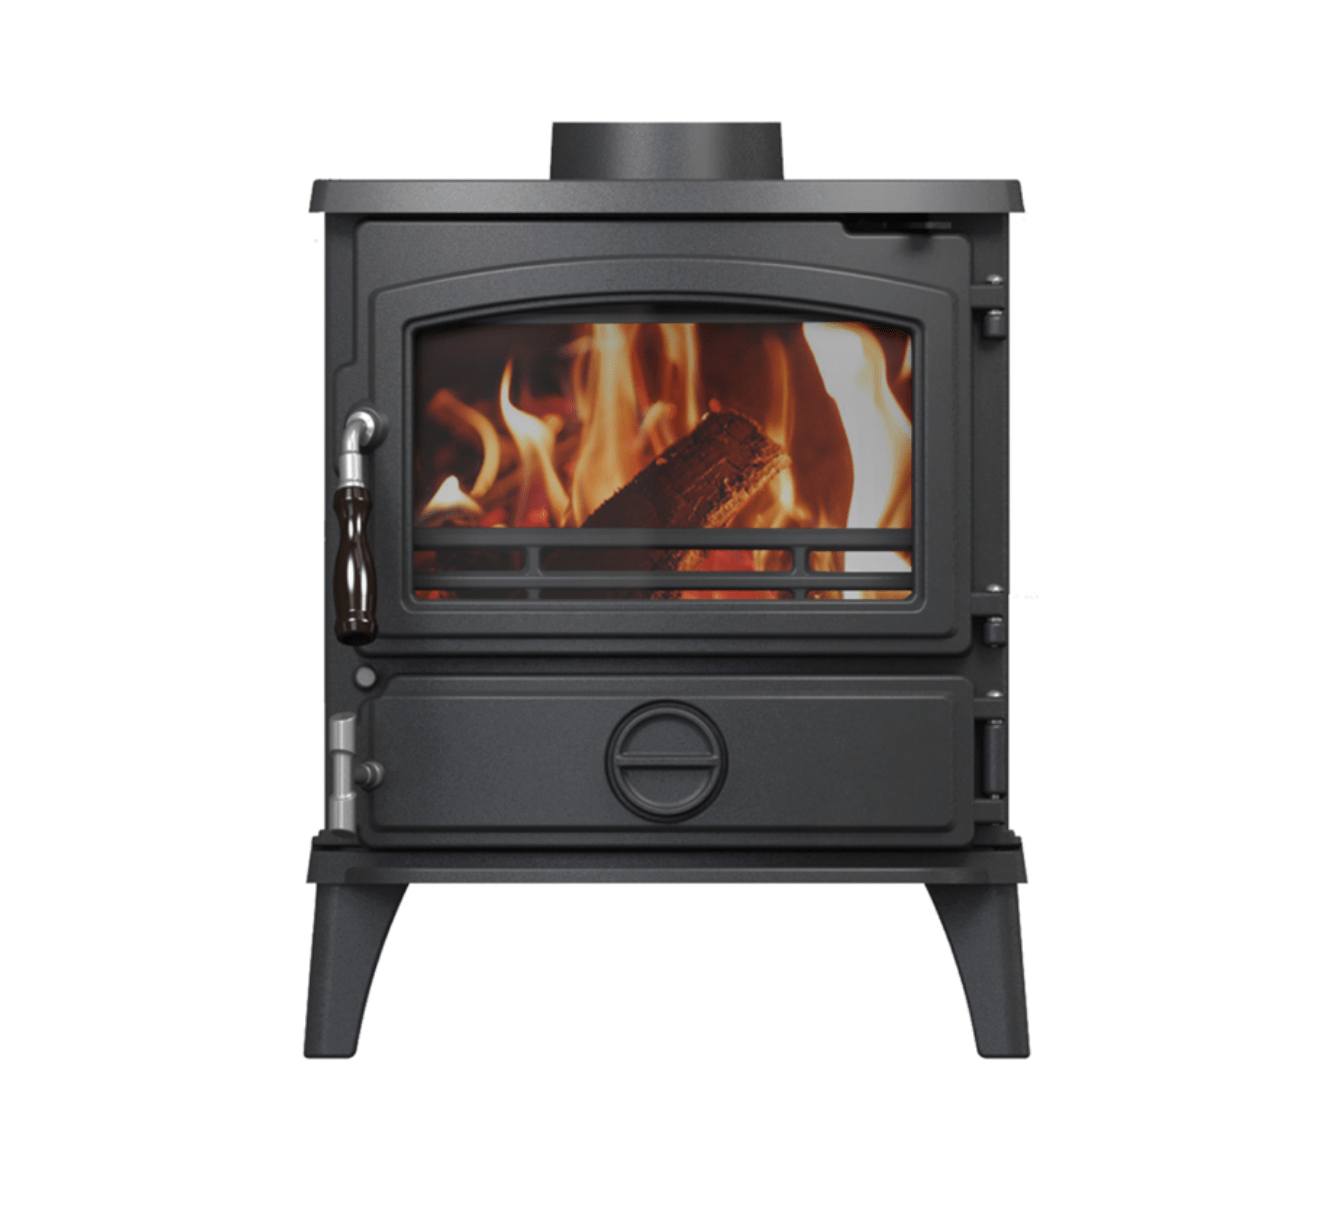 Kaminofen Skantherm Test Wood Burning Multi Fuel Stoves Coeval Fires